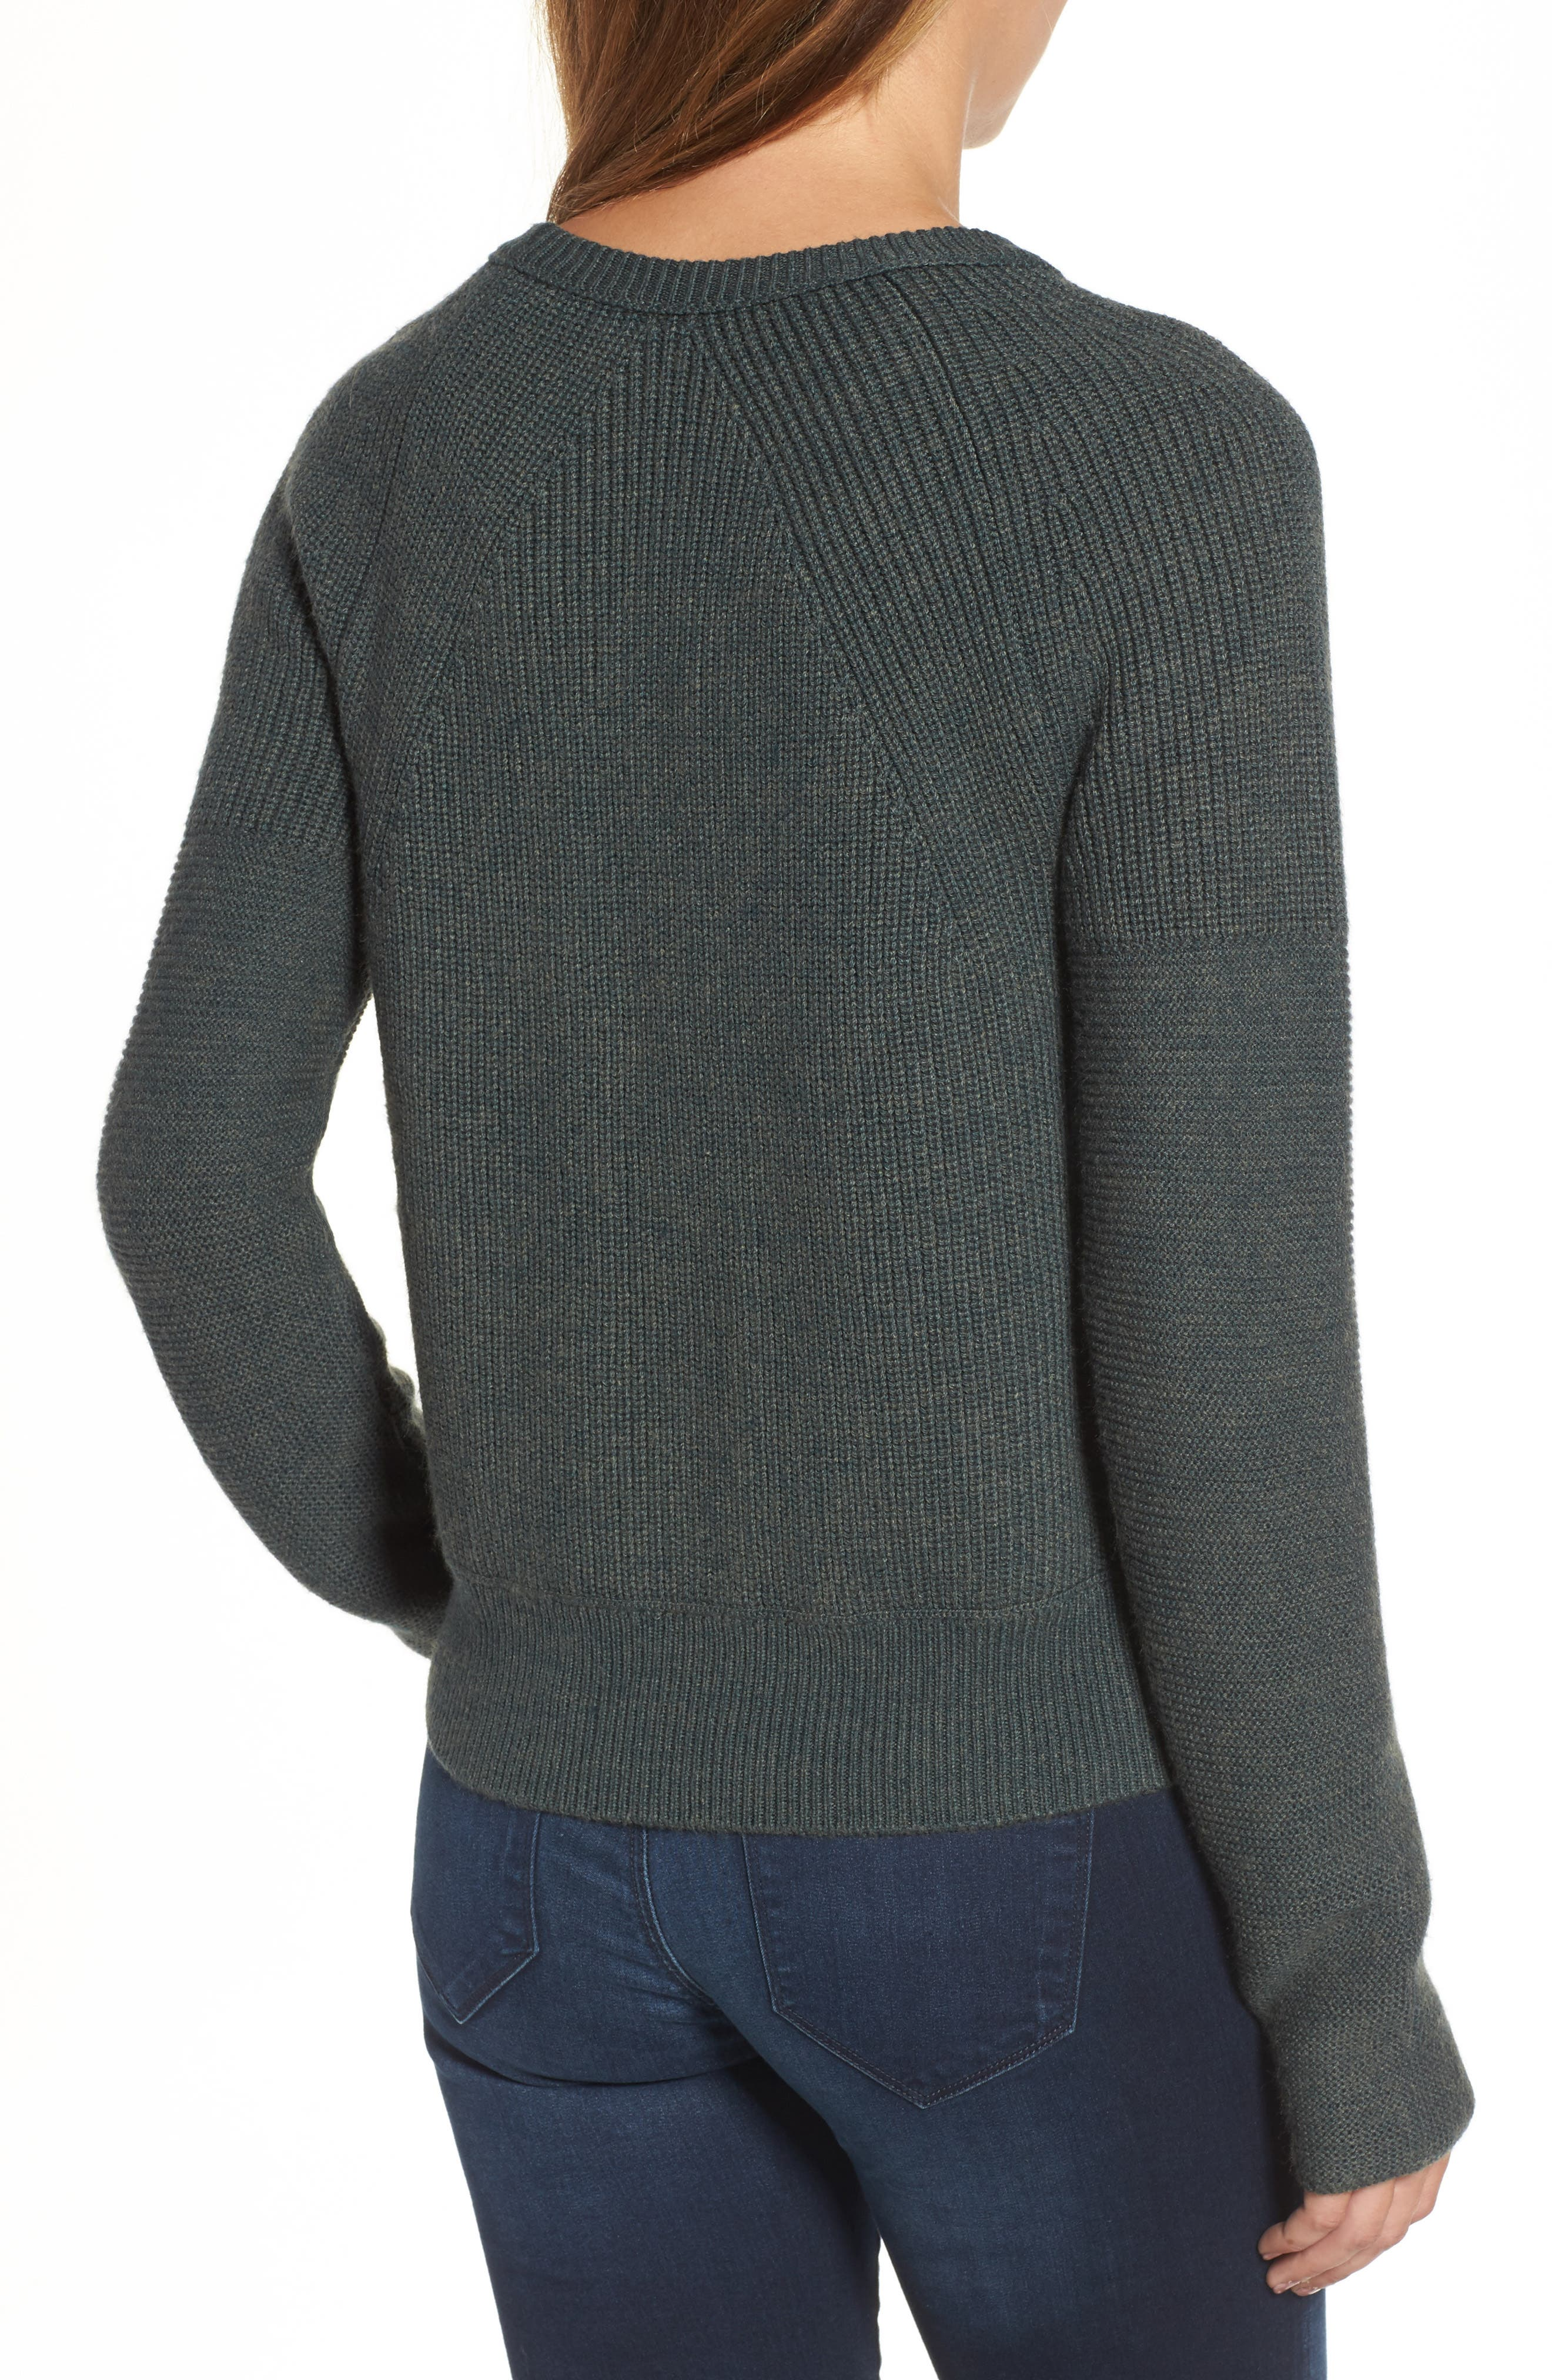 Engineered Stitch Sweater,                             Alternate thumbnail 4, color,